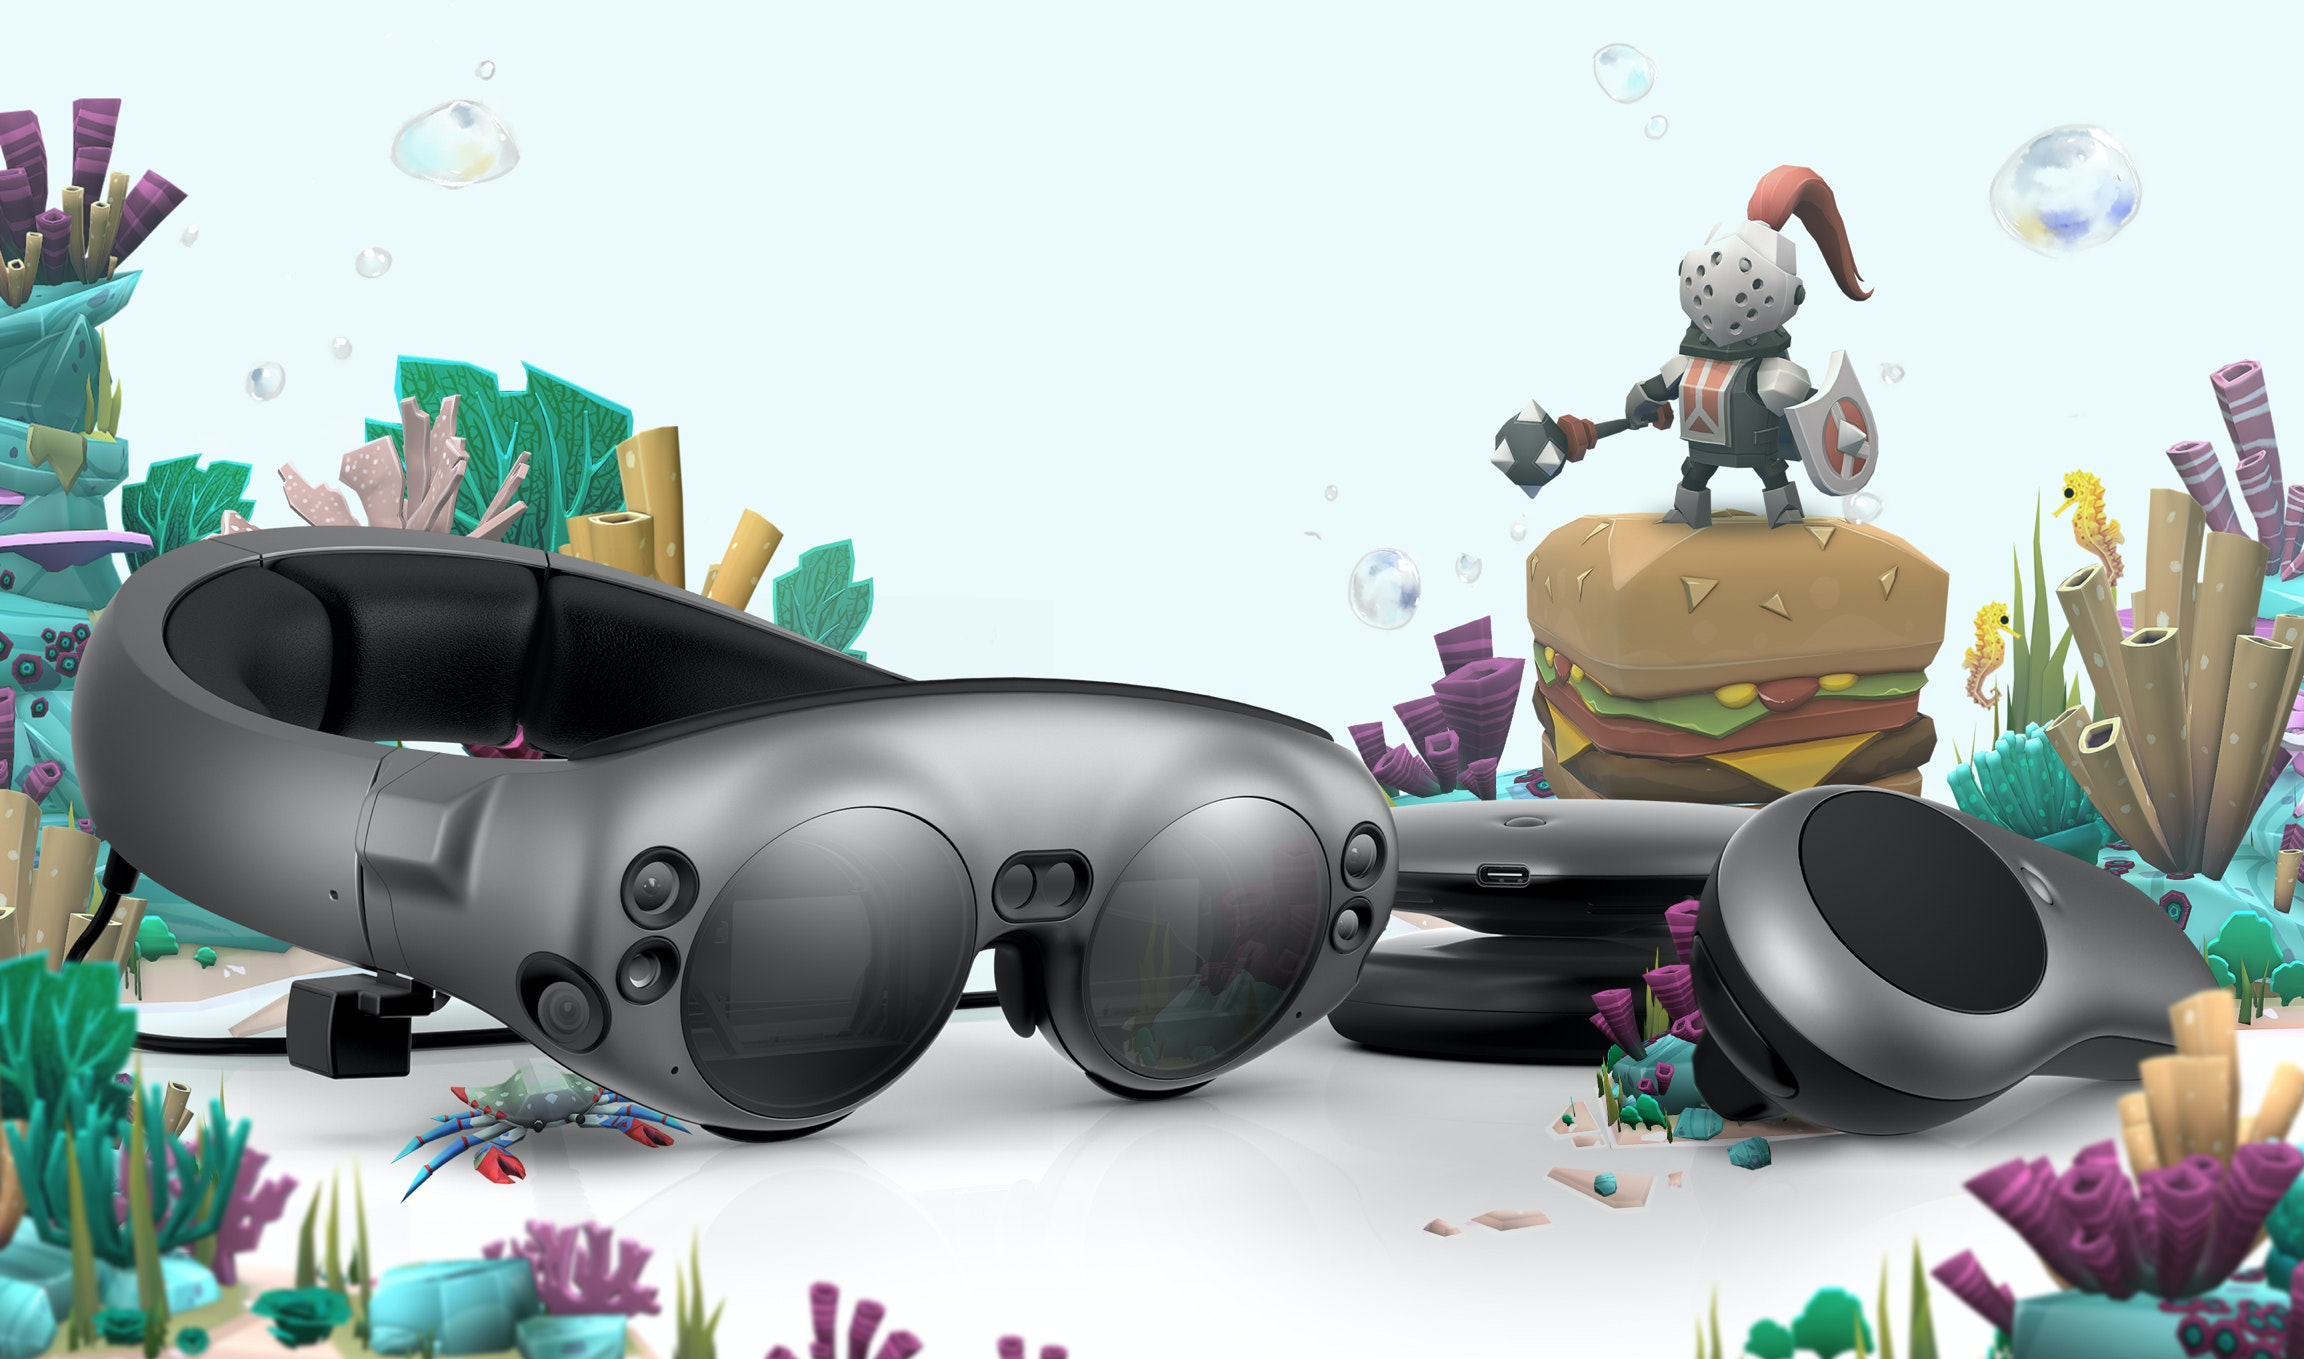 Magic Leap One, Creator Edition